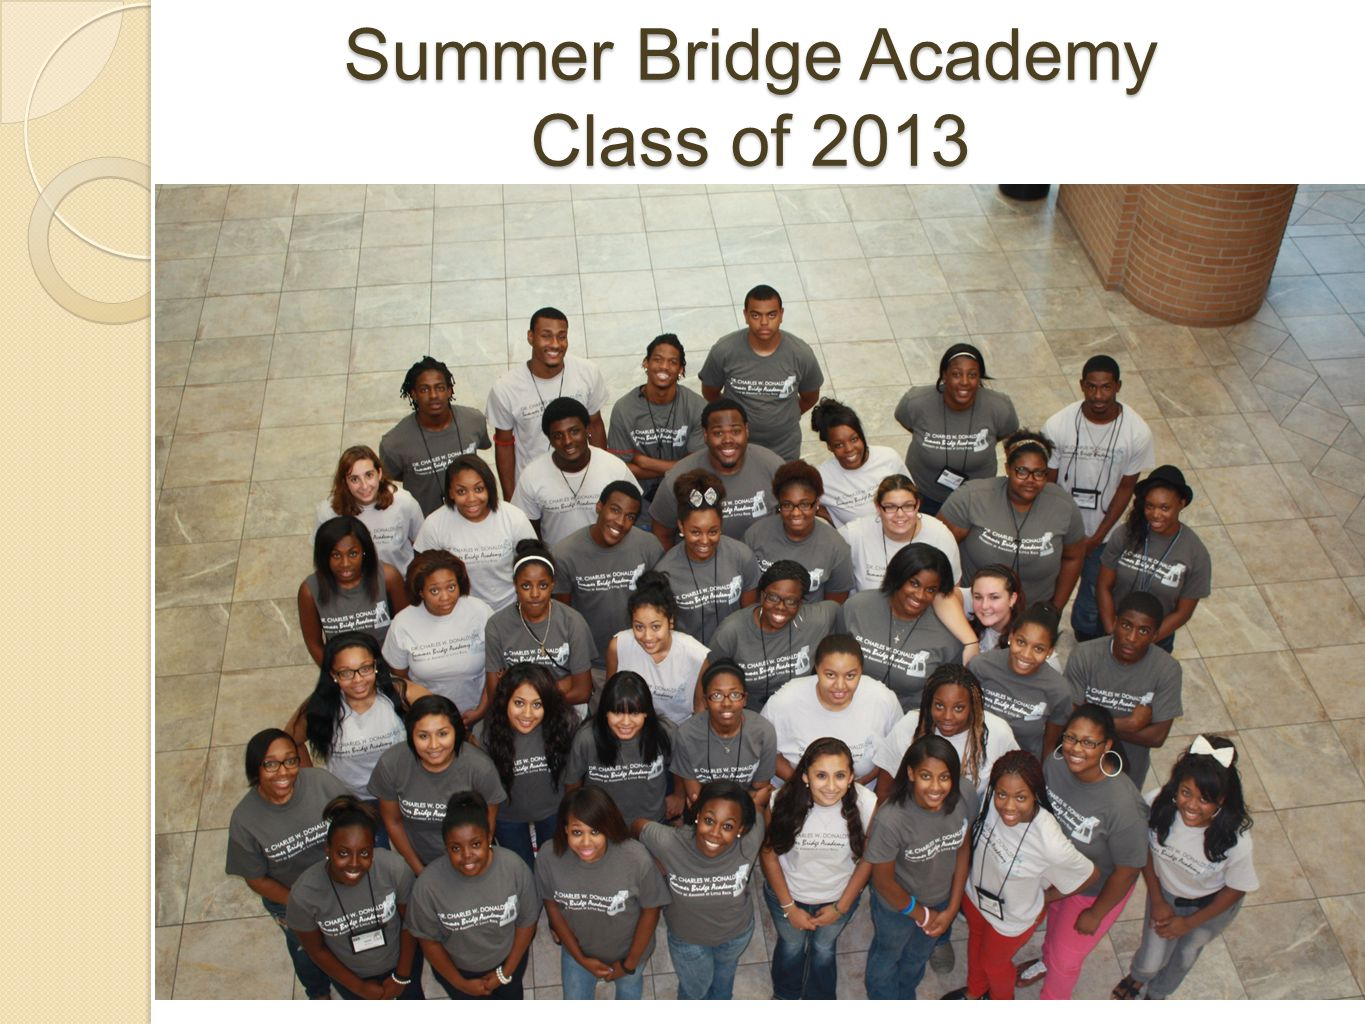 Summer Bridge Academy Class of 2013